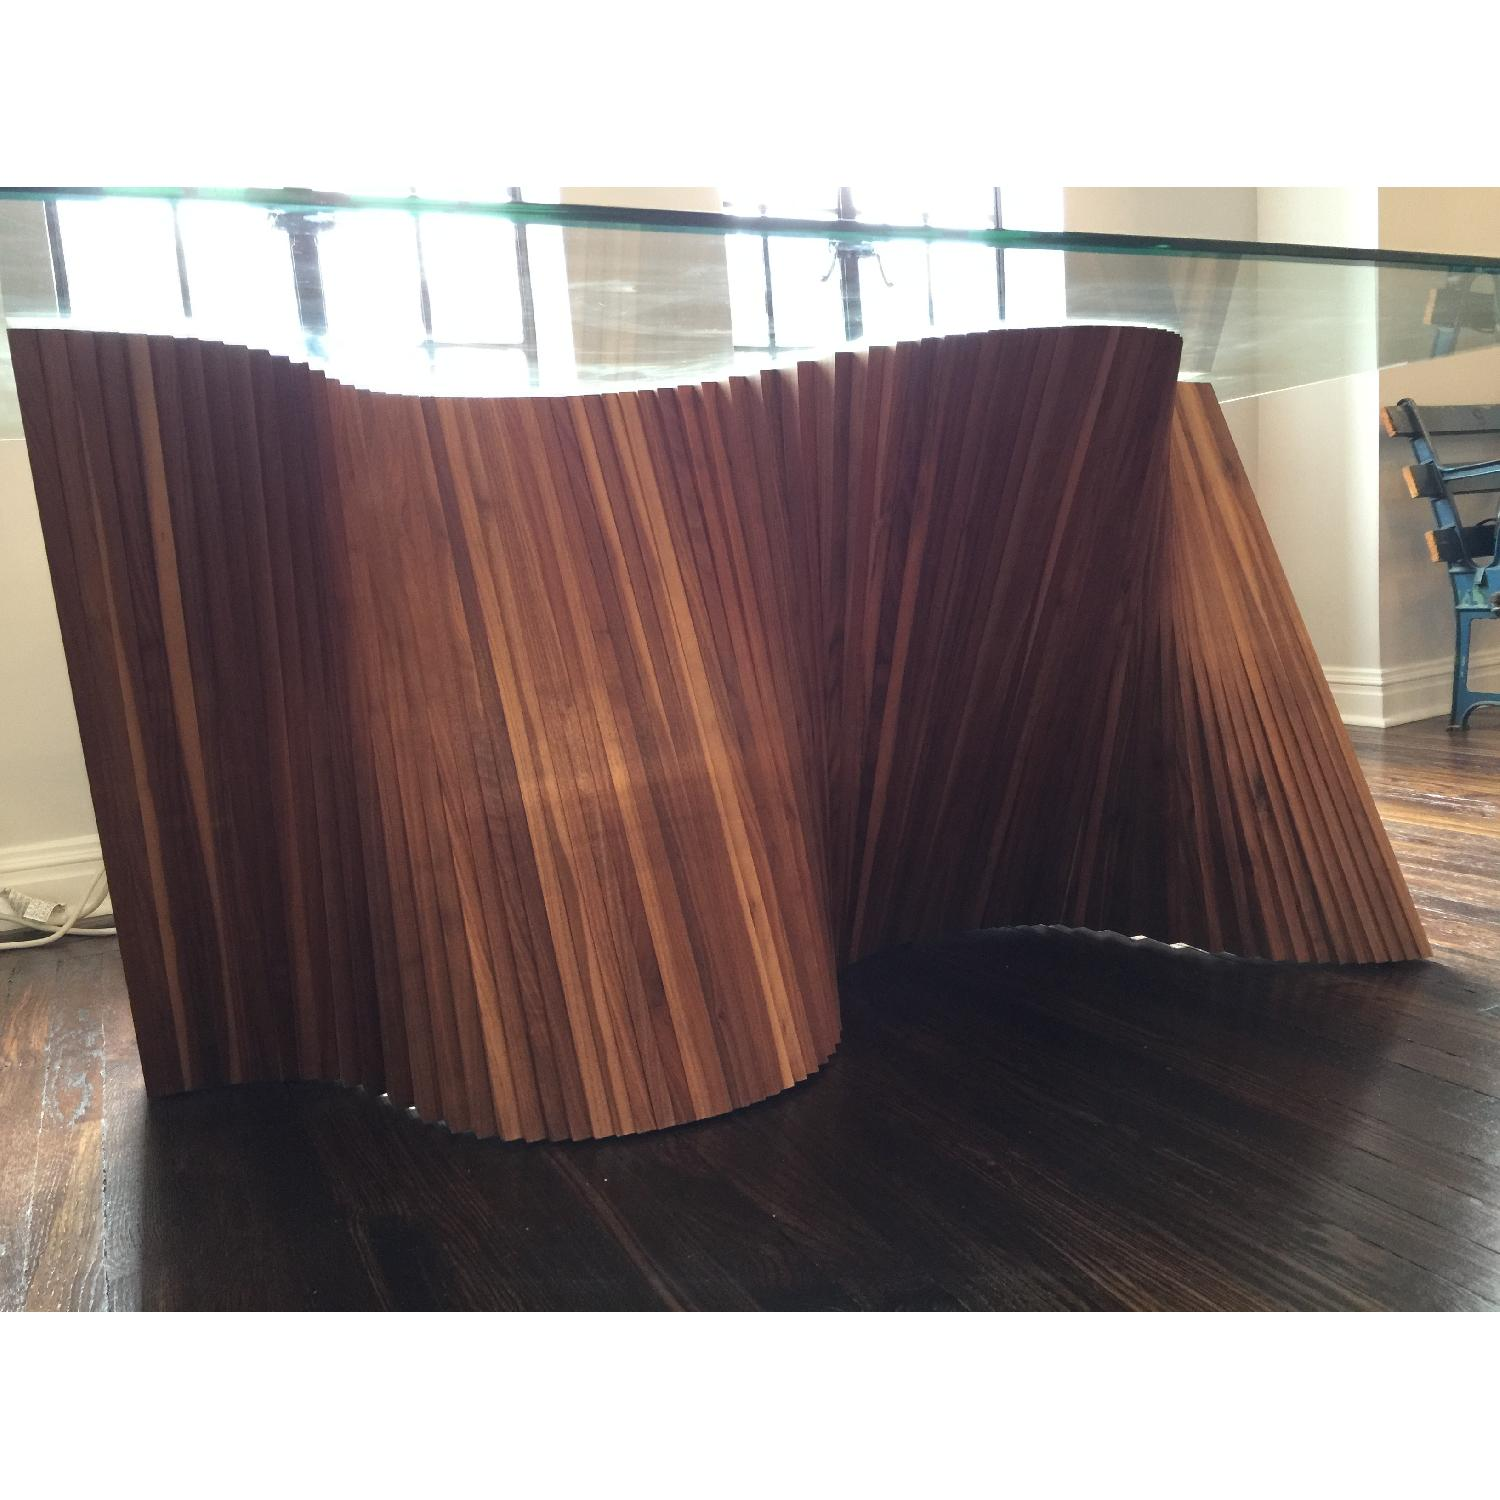 Kenneth Cobonpue Wave Dining Table - image-6